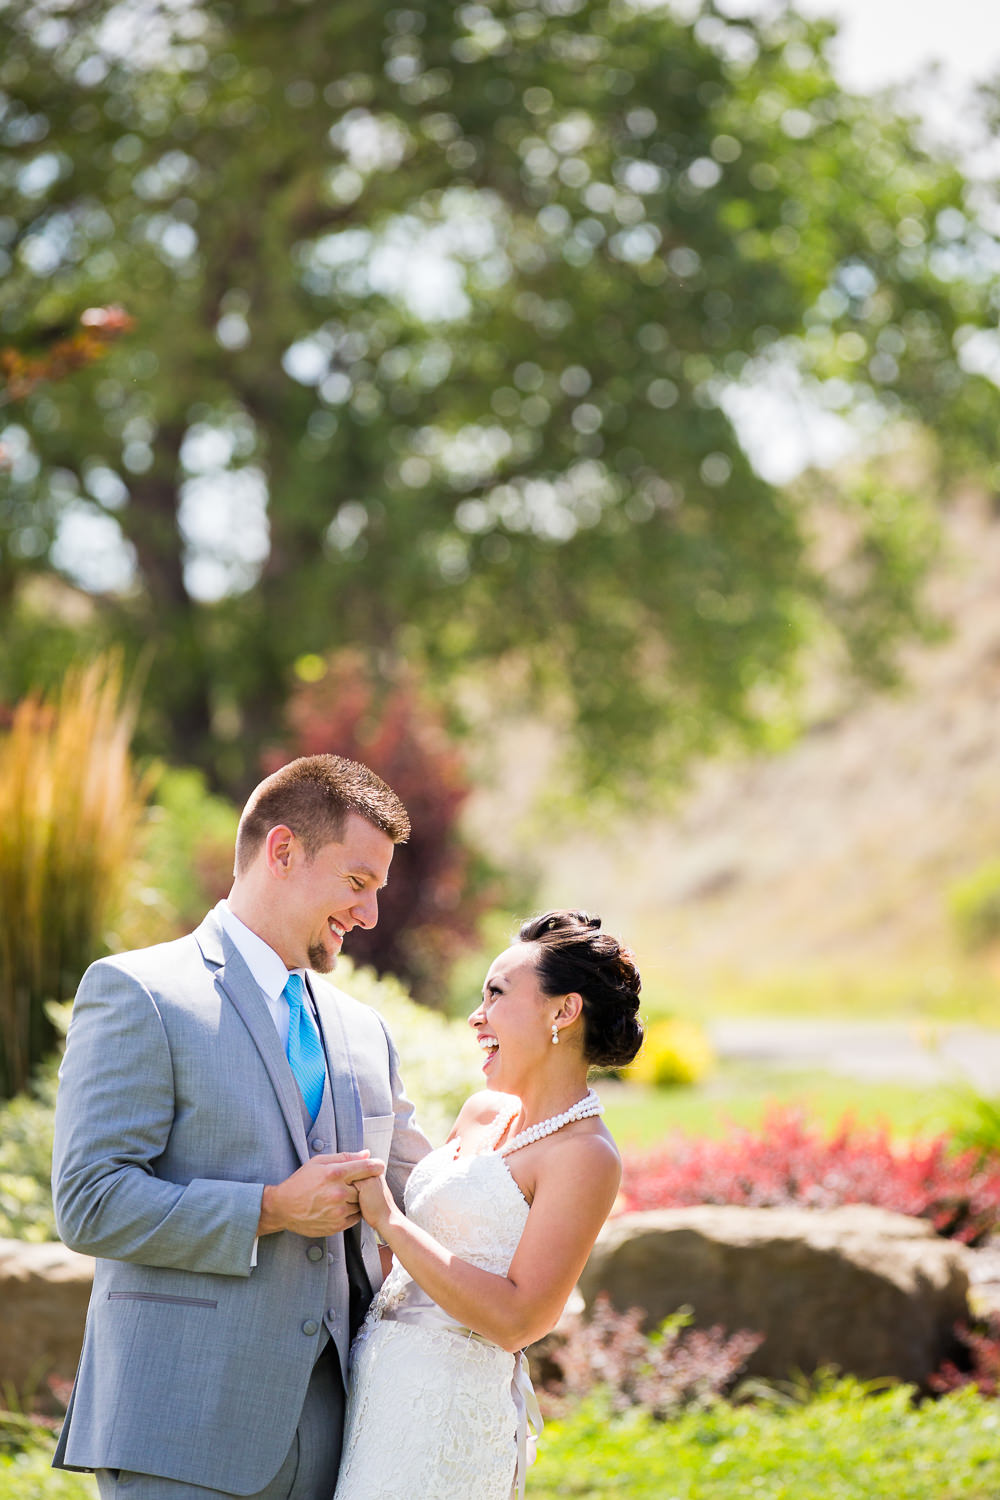 billings-wedding-chanceys-bride-groom-first-look.jpg